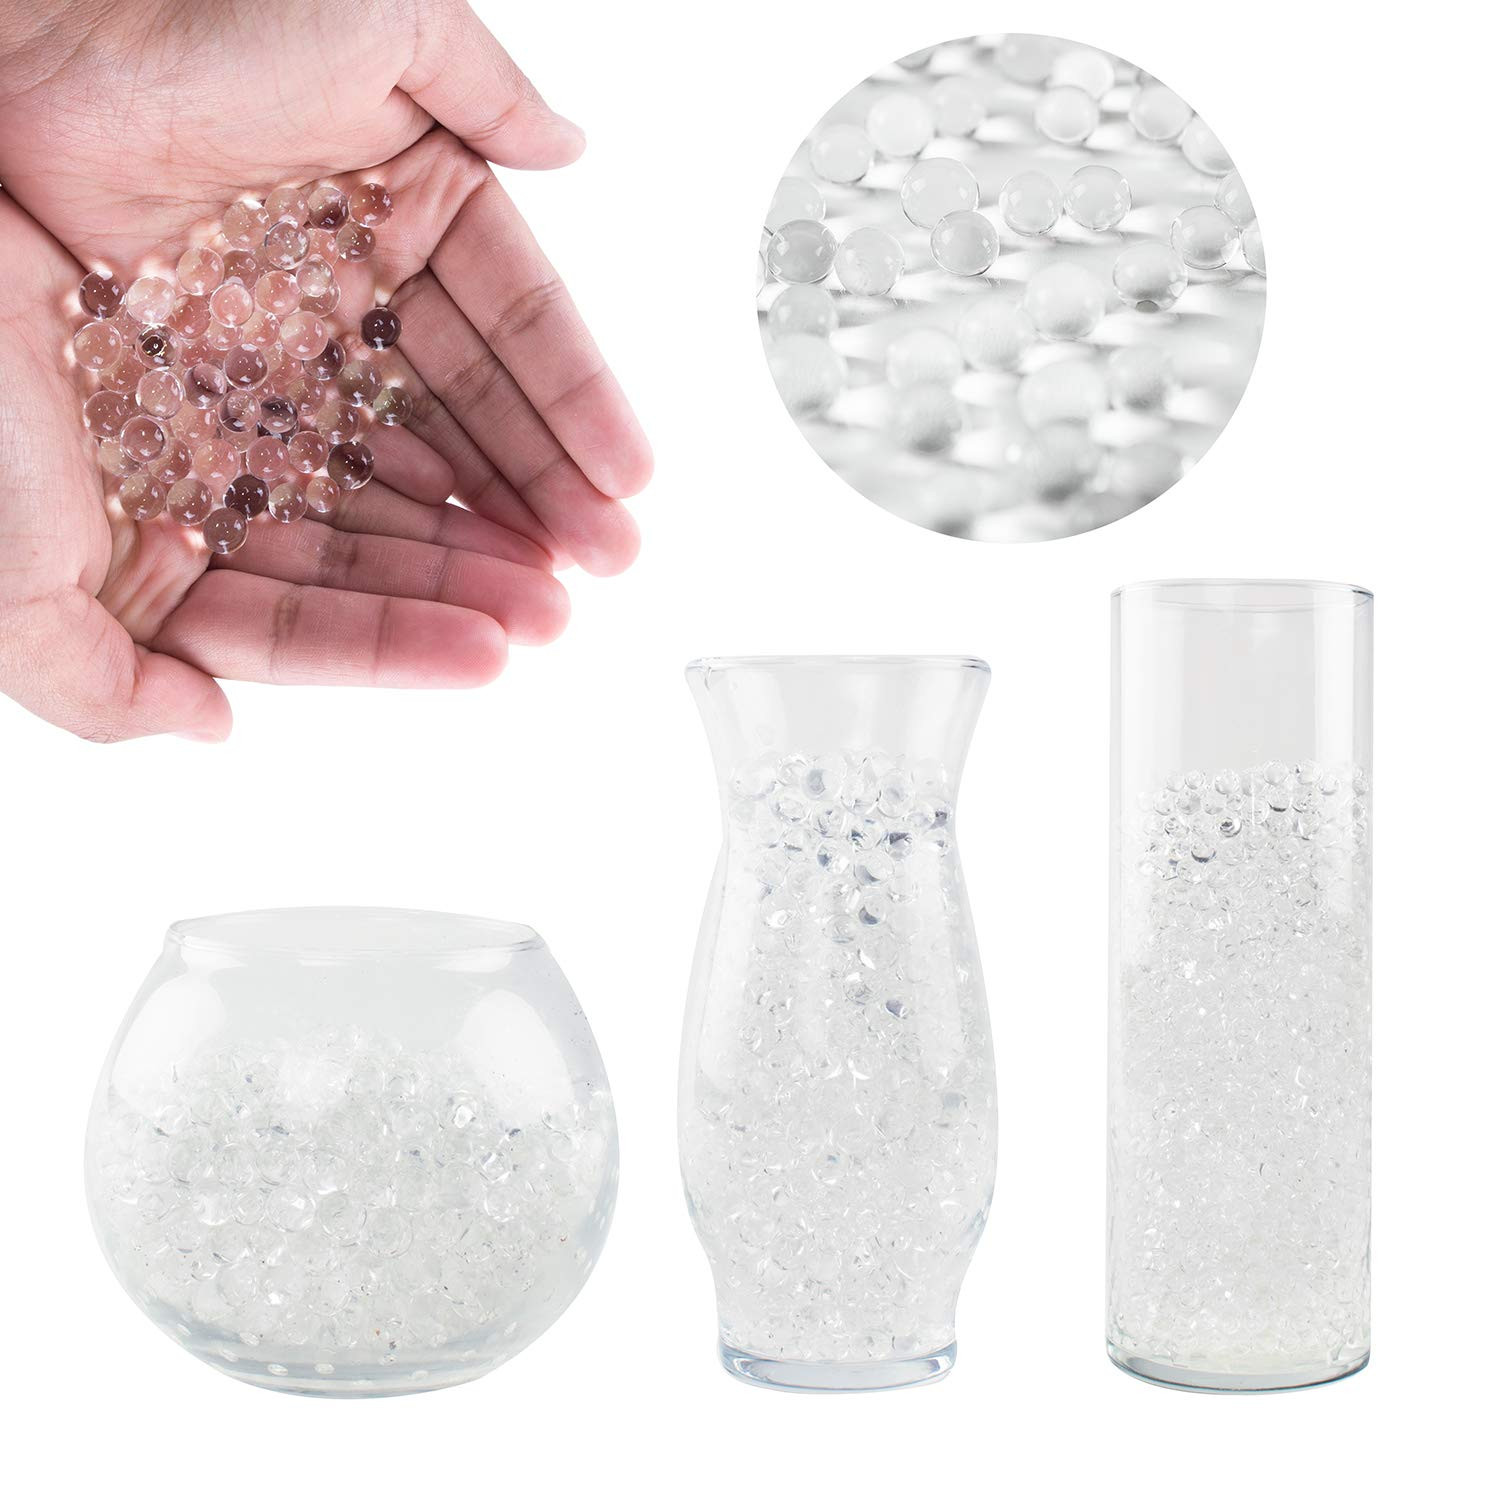 4 glass cube vase of best floating pearls for centerpieces amazon com within super z outlet 1 pound bag of clear water gel beads pearls for vase filler candles wedding centerpiece home decoration plants toys education